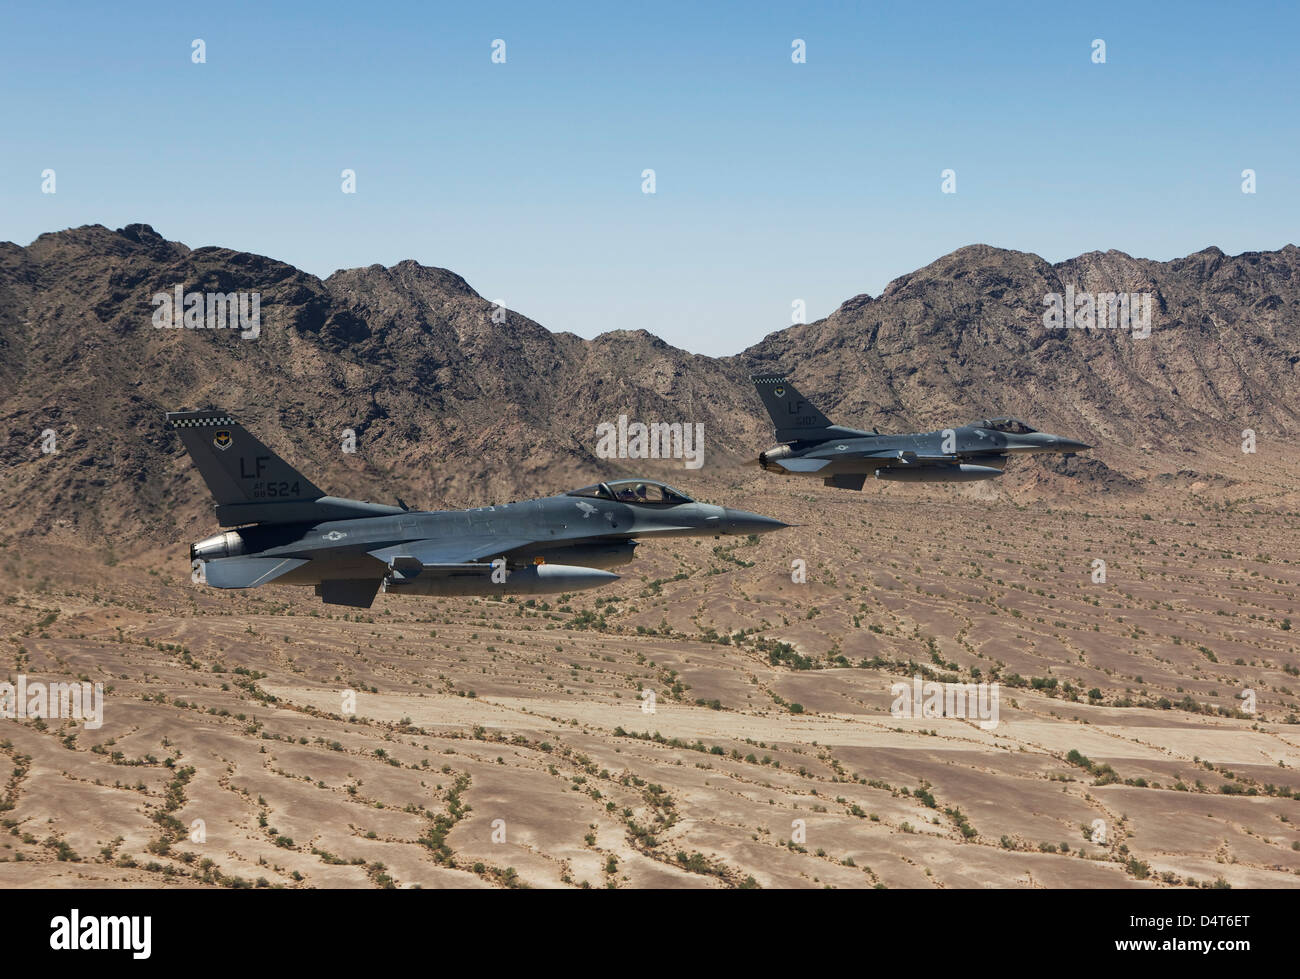 Two F-16's fly in formation over the Arizona desert. - Stock Image